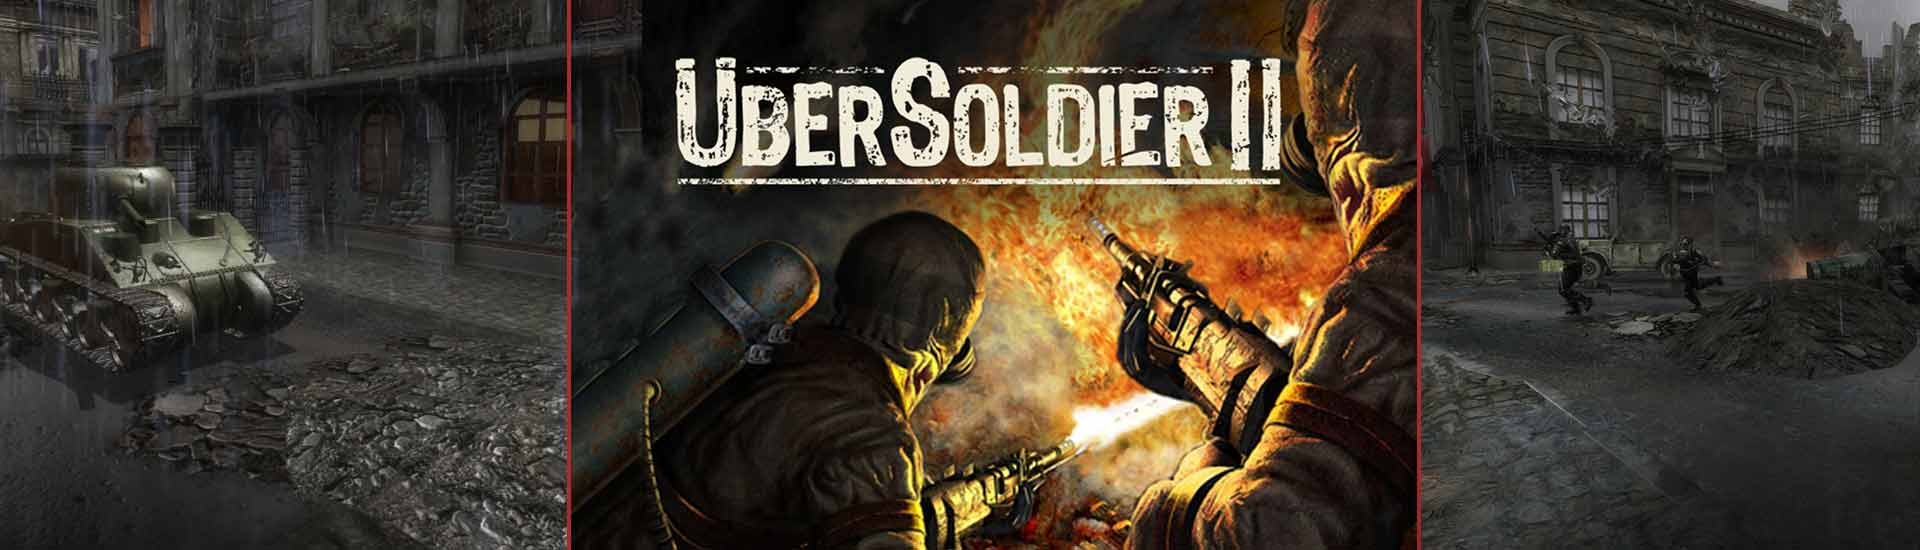 UBERSOLDIER II cover